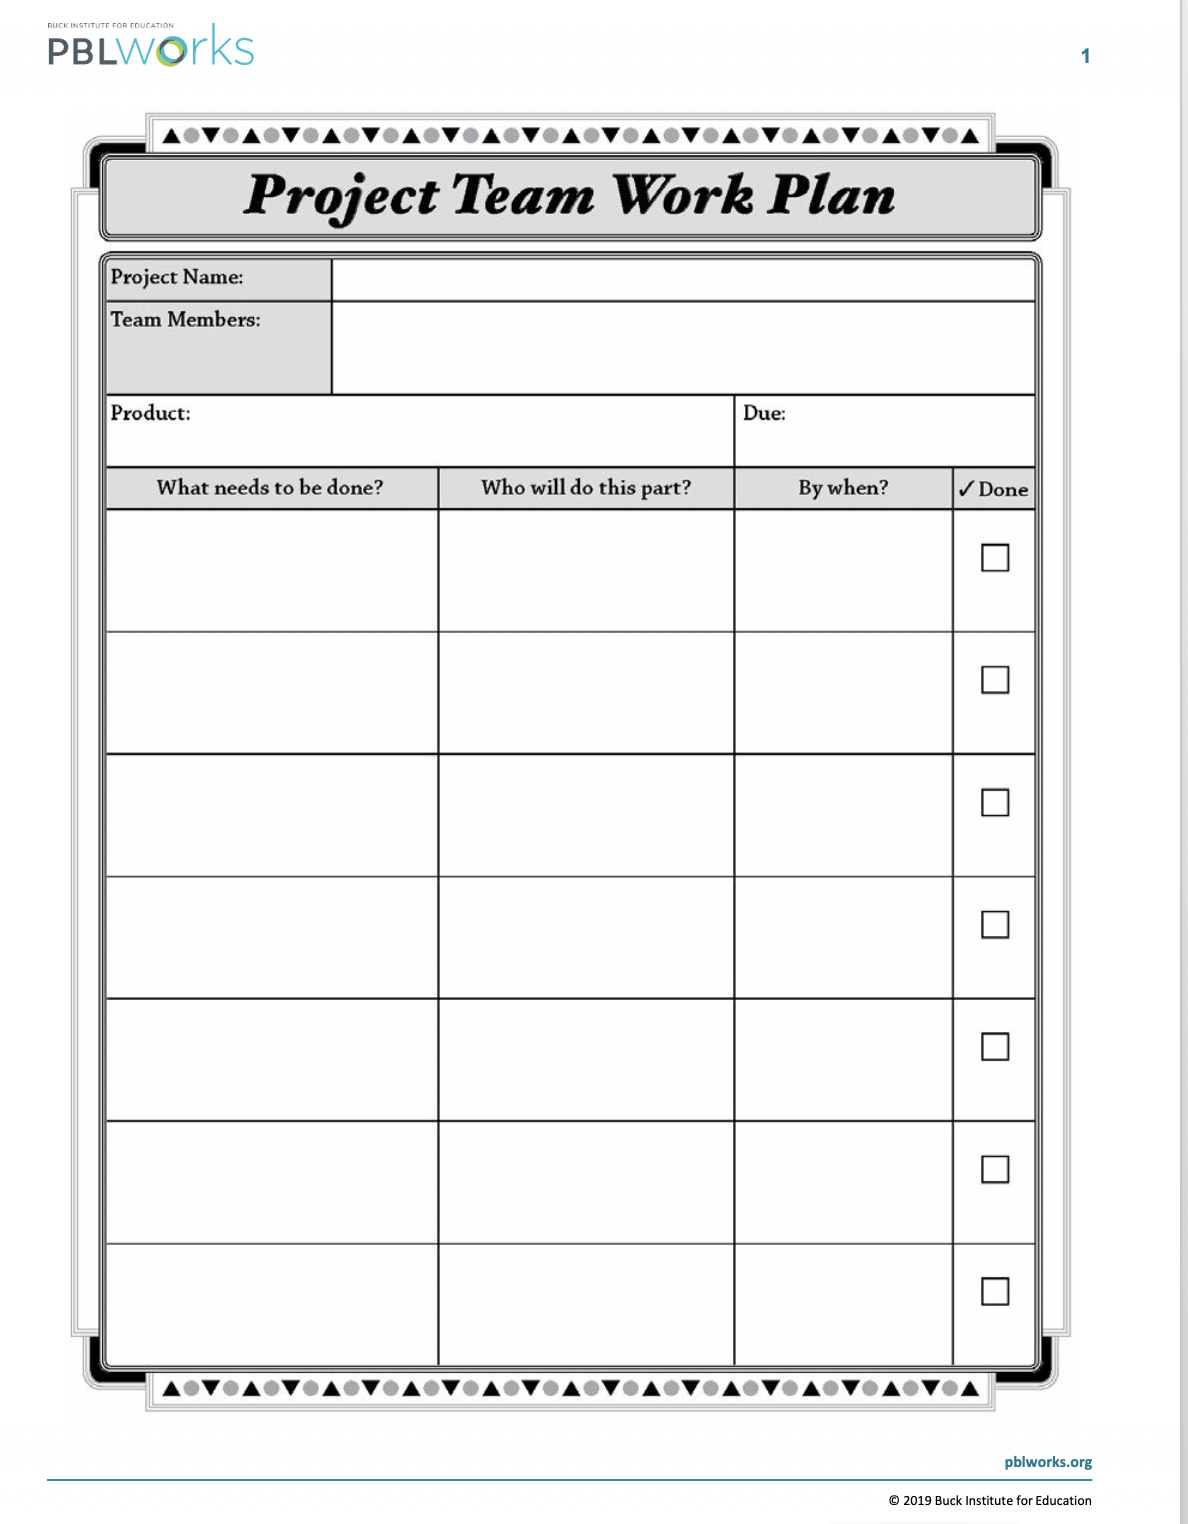 Project Team Work Plan